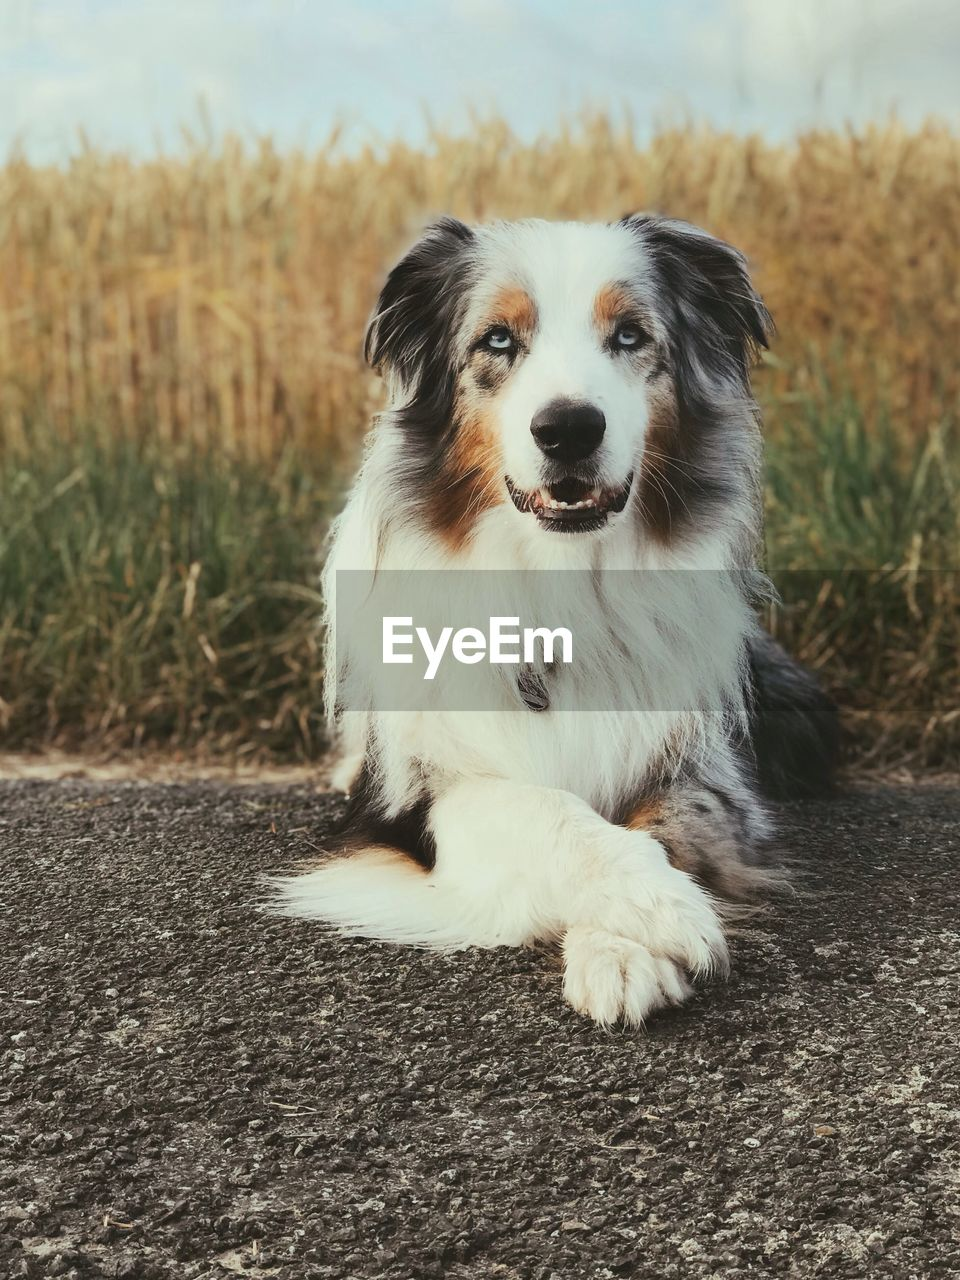 dog, canine, one animal, domestic, pets, animal themes, mammal, domestic animals, animal, vertebrate, land, field, no people, sitting, day, portrait, nature, focus on foreground, looking at camera, looking, outdoors, mouth open